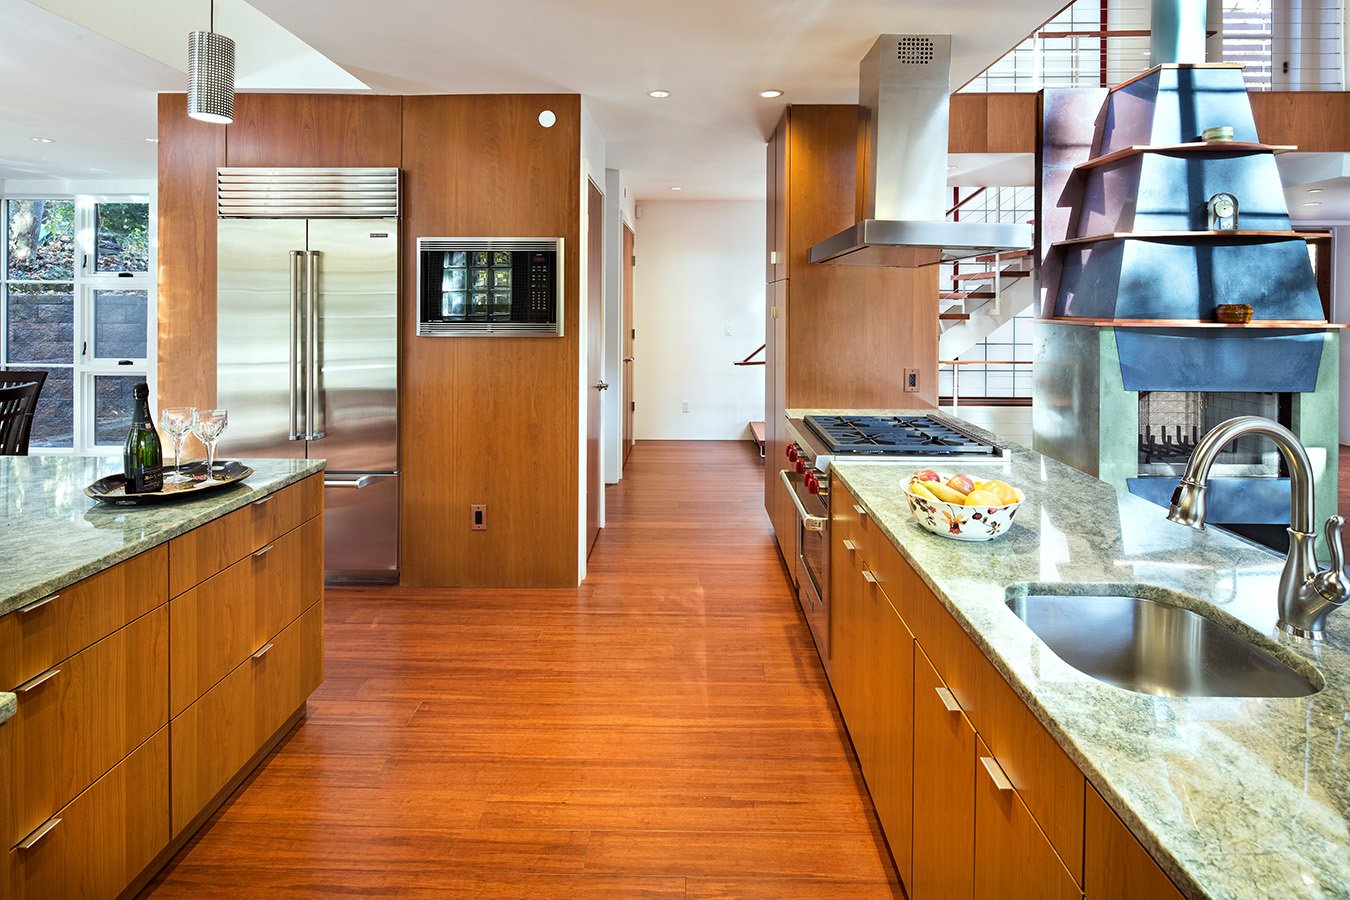 Kitchen, Refrigerator, Cooktops, Range, Range Hood, Microwave, Dishwasher, Granite, Wood, Medium Hardwood, Mosaic Tile, Ceiling, Pendant, Undermount, and Concrete Kitchen  Best Kitchen Microwave Dishwasher Granite Range Hood Pendant Photos from Home for Sale: Takoma Park House